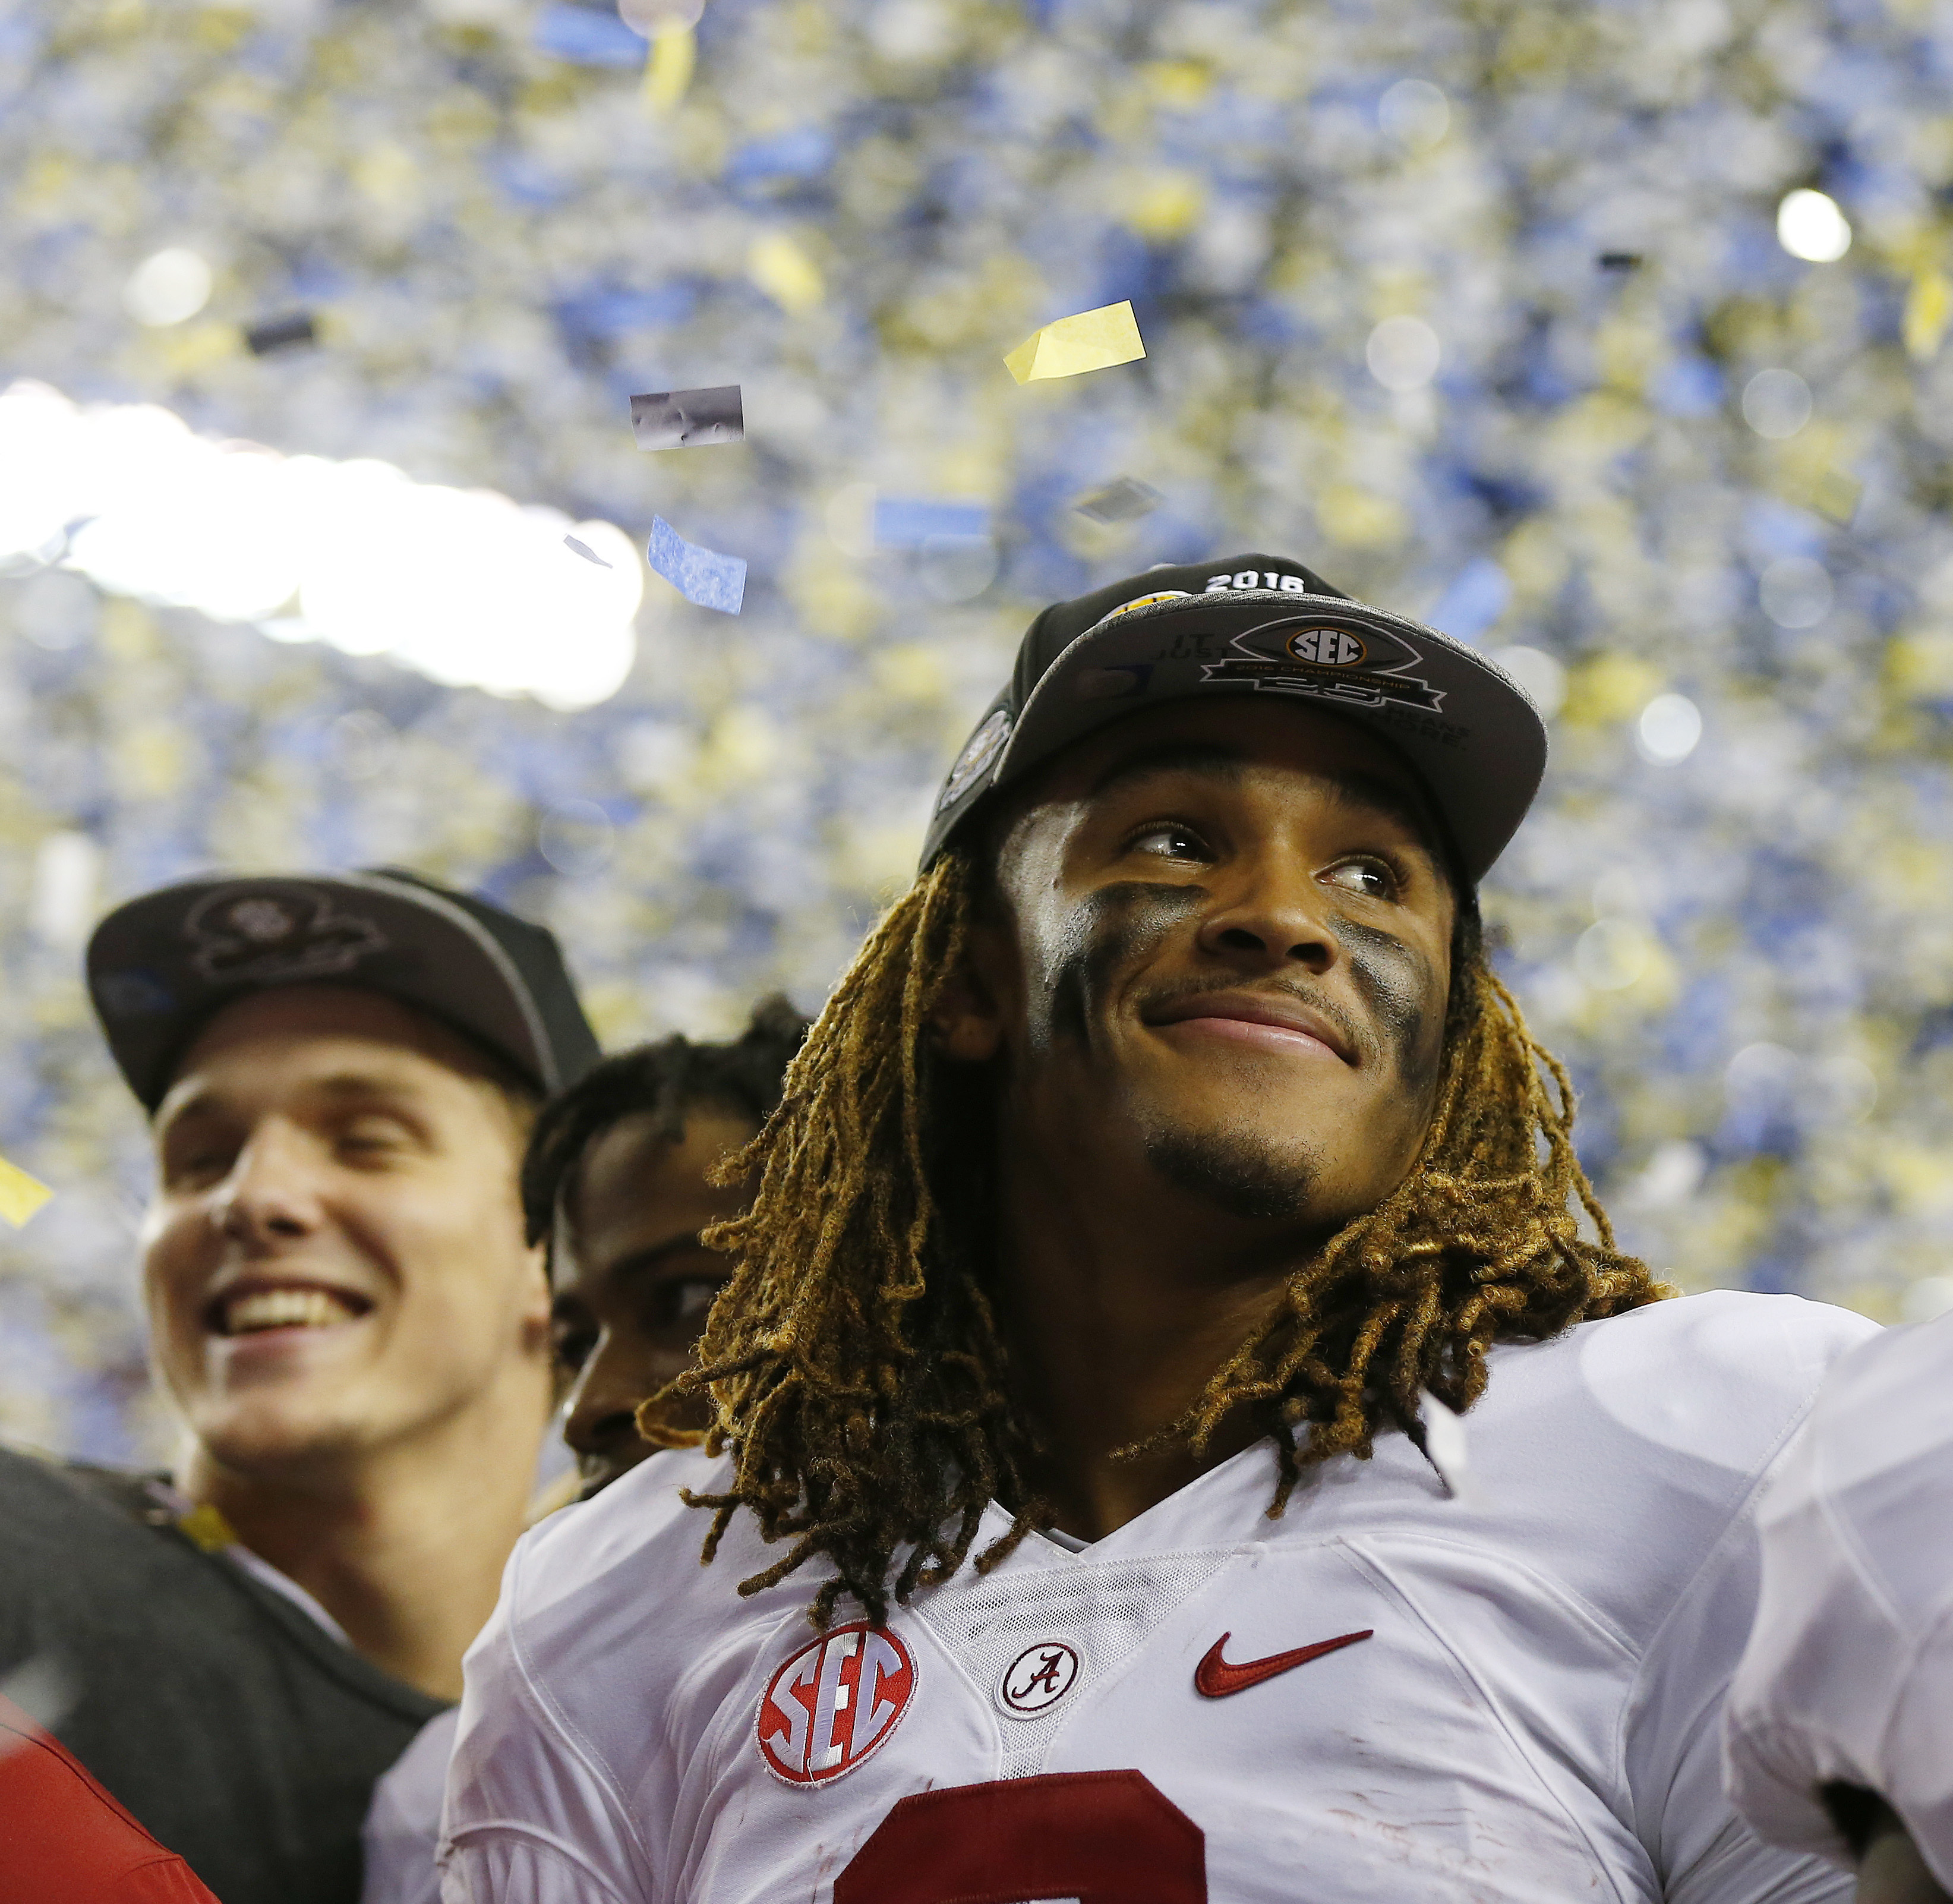 Alabama quarterback Jalen Hurts (2) celebrates after the Southeastern Conference championship NCAA college football game against Florida, Saturday, Dec. 3, 2016, in Atlanta. Alabama won 54-16. (AP Photo/Butch Dill)